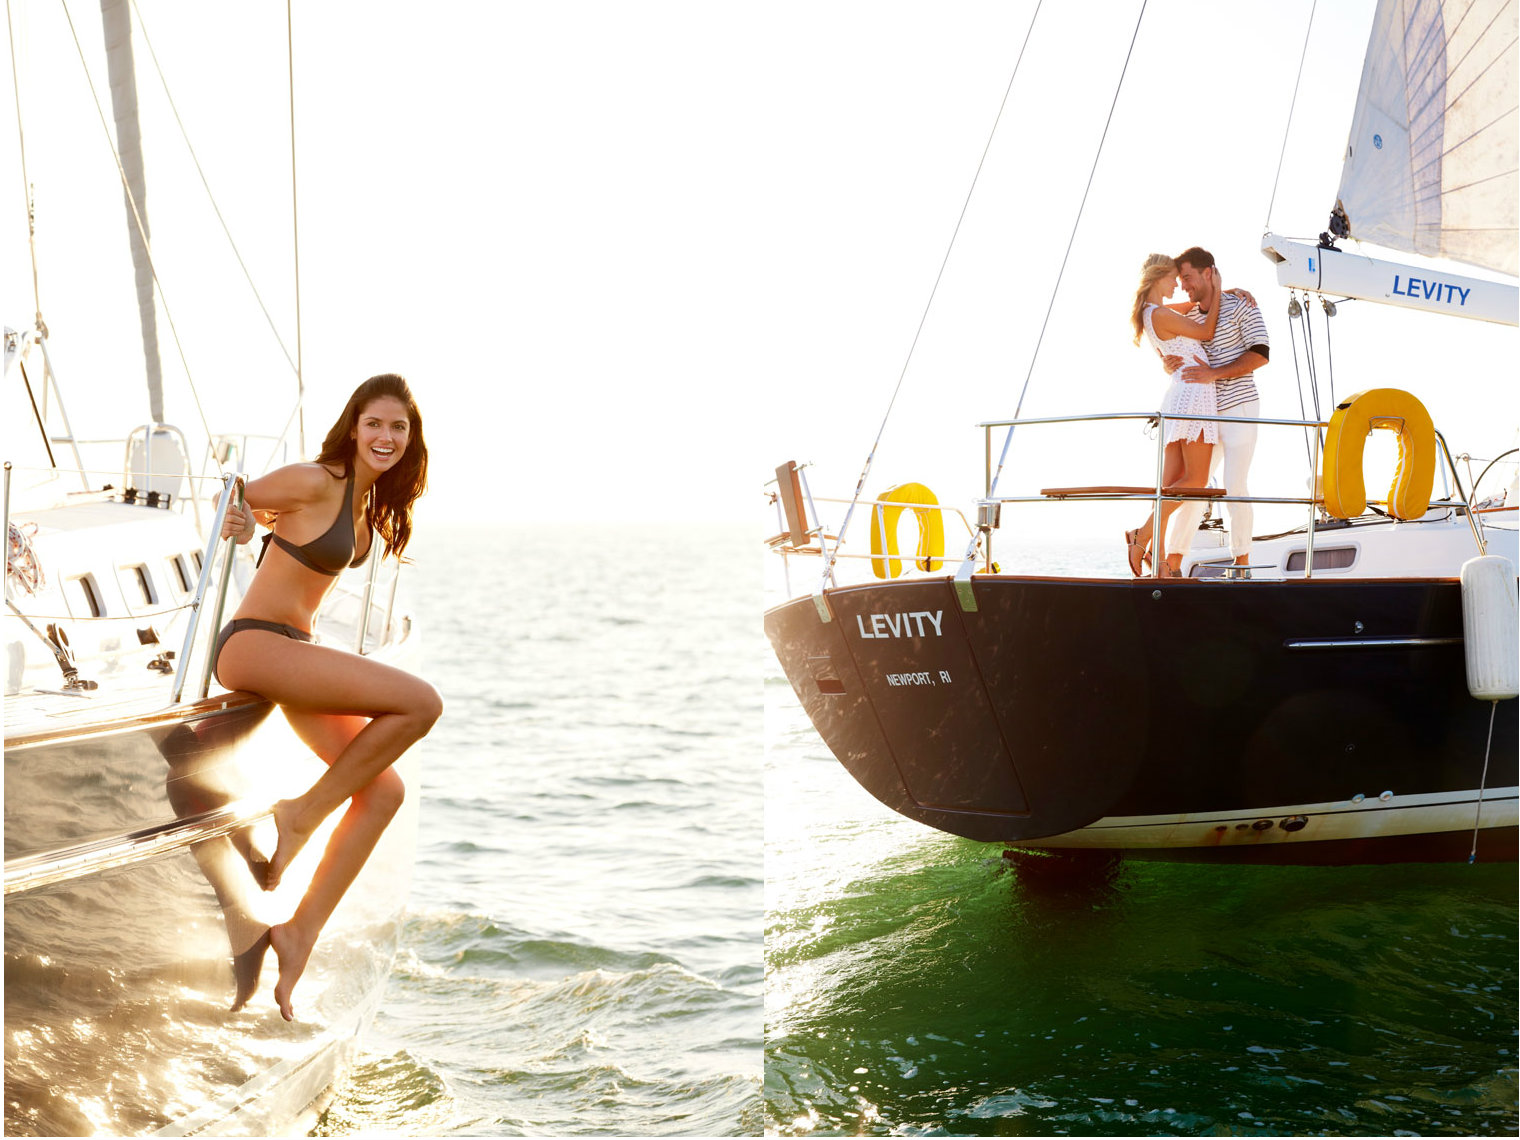 BOATING FASHION & LIFESTYLE